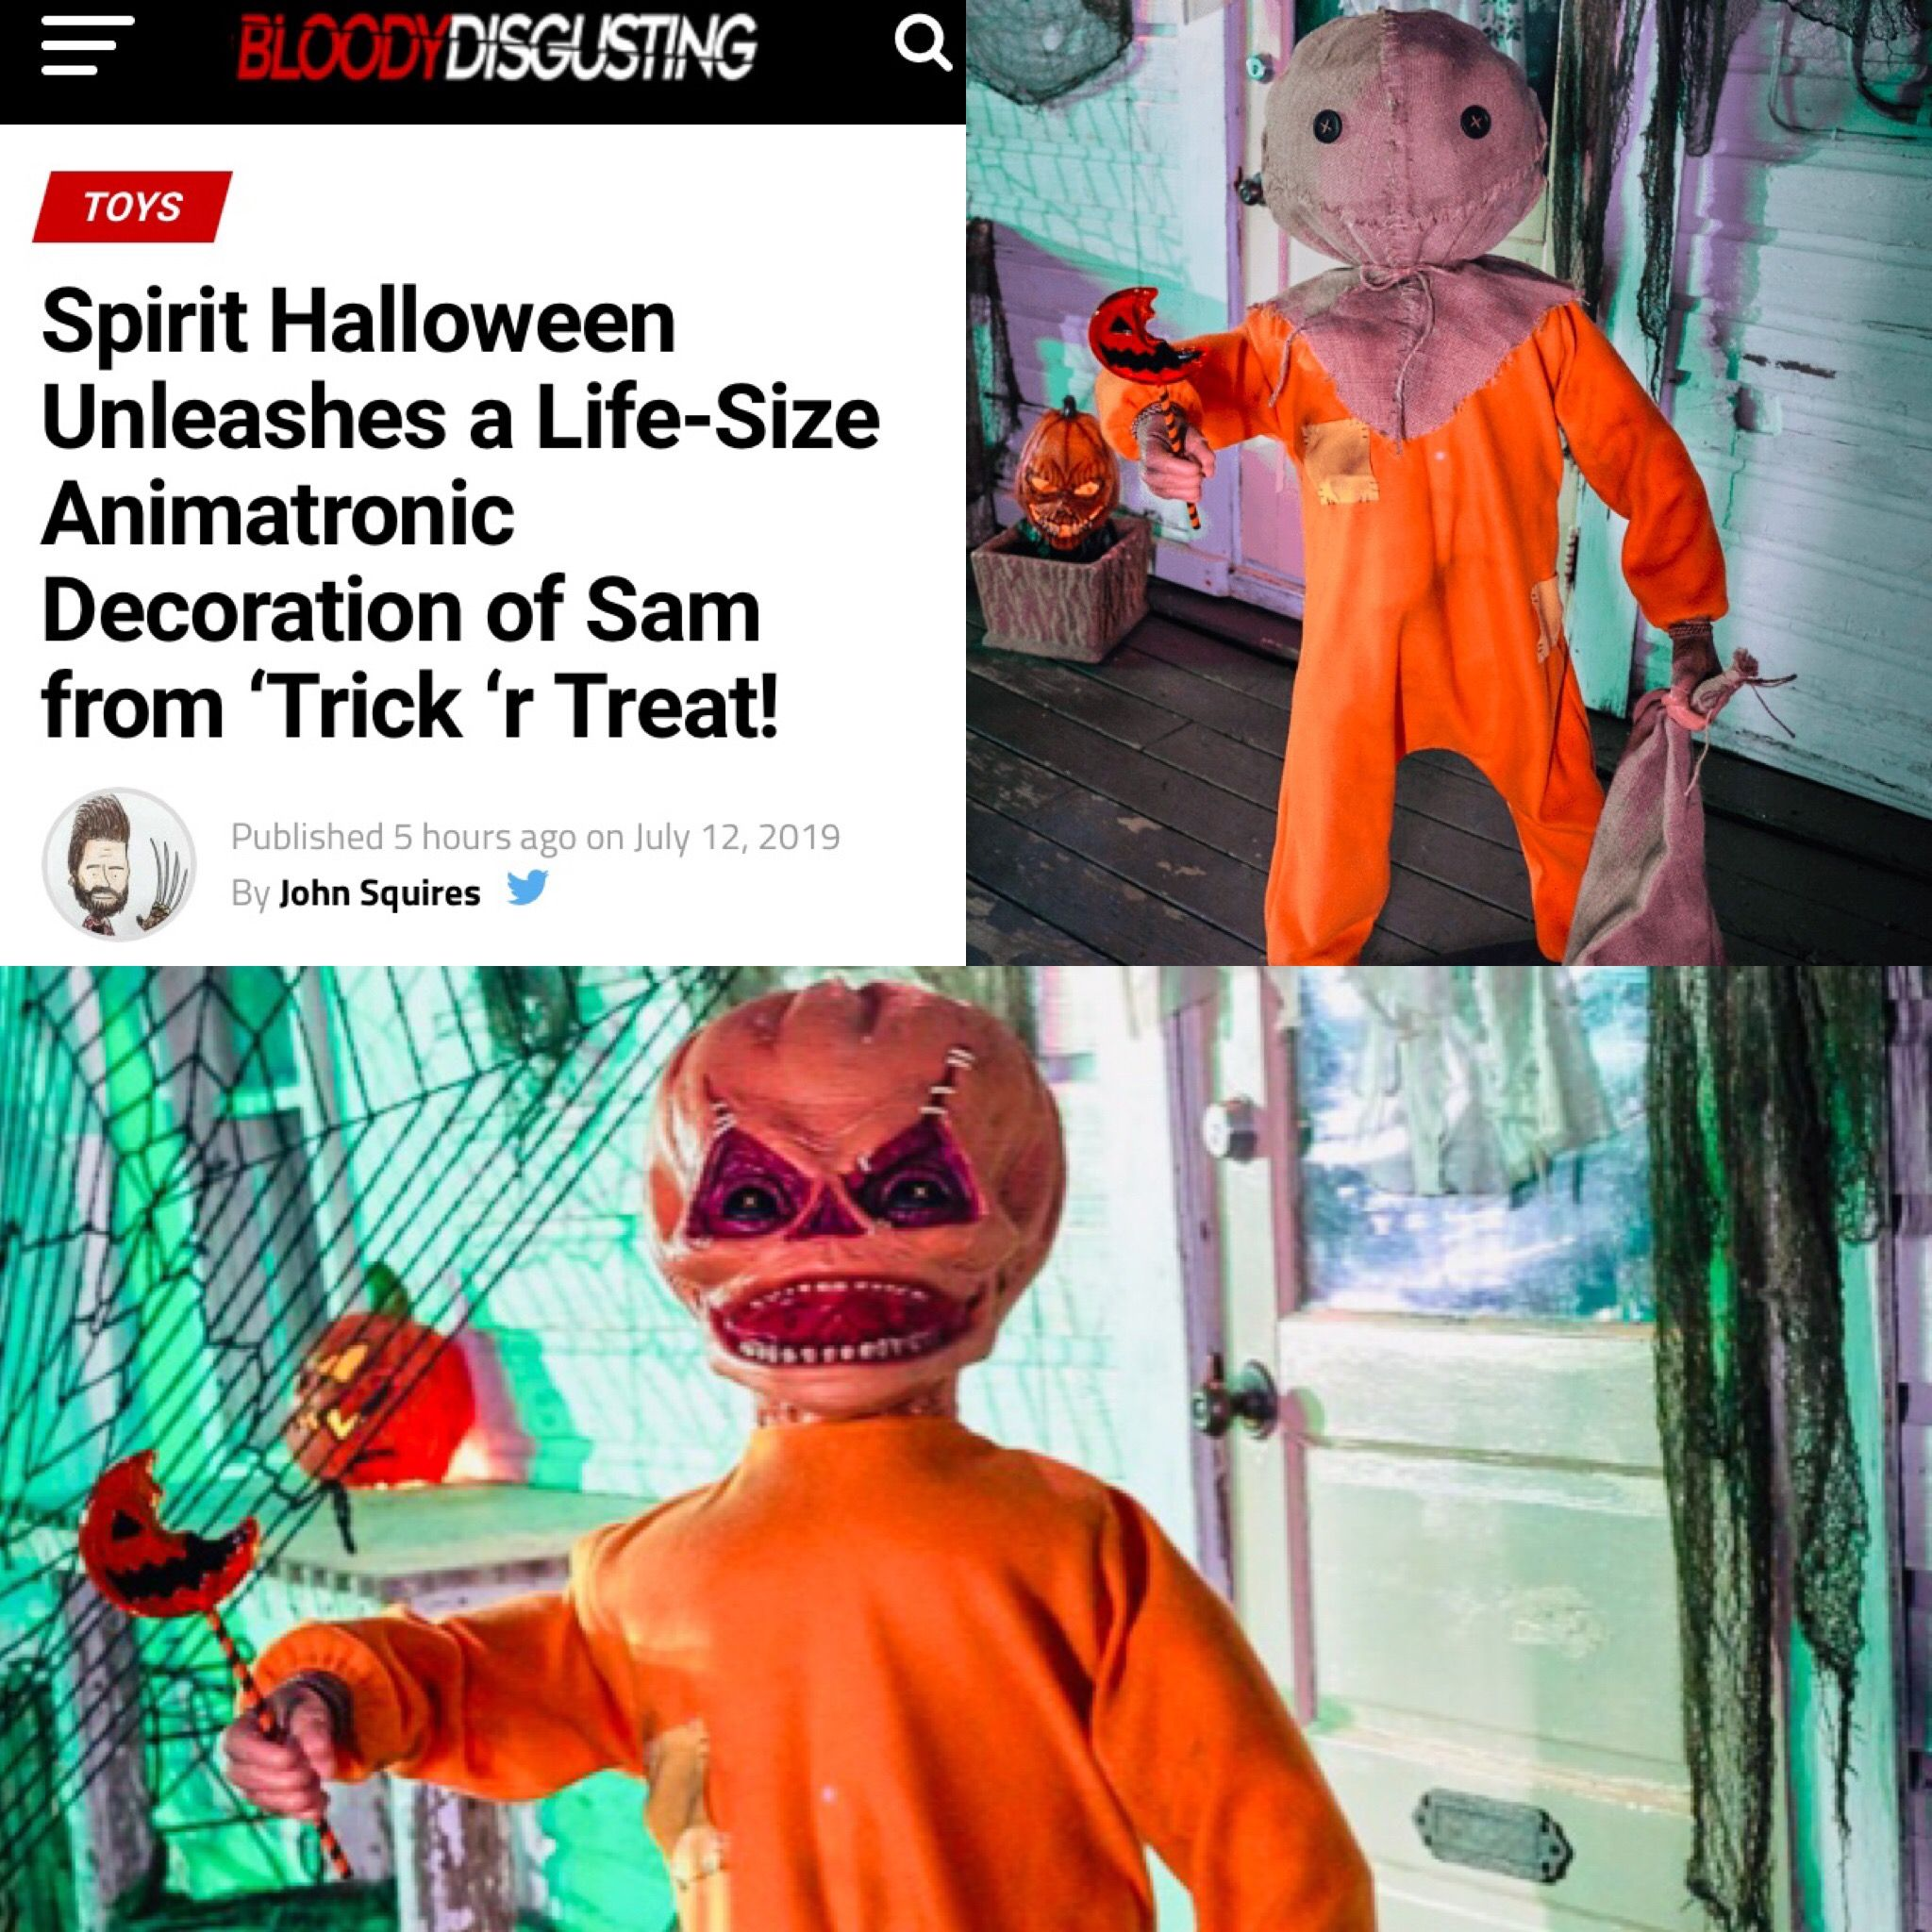 Sam/Trick R Treat Animatronic From Spirit Halloween, Fall